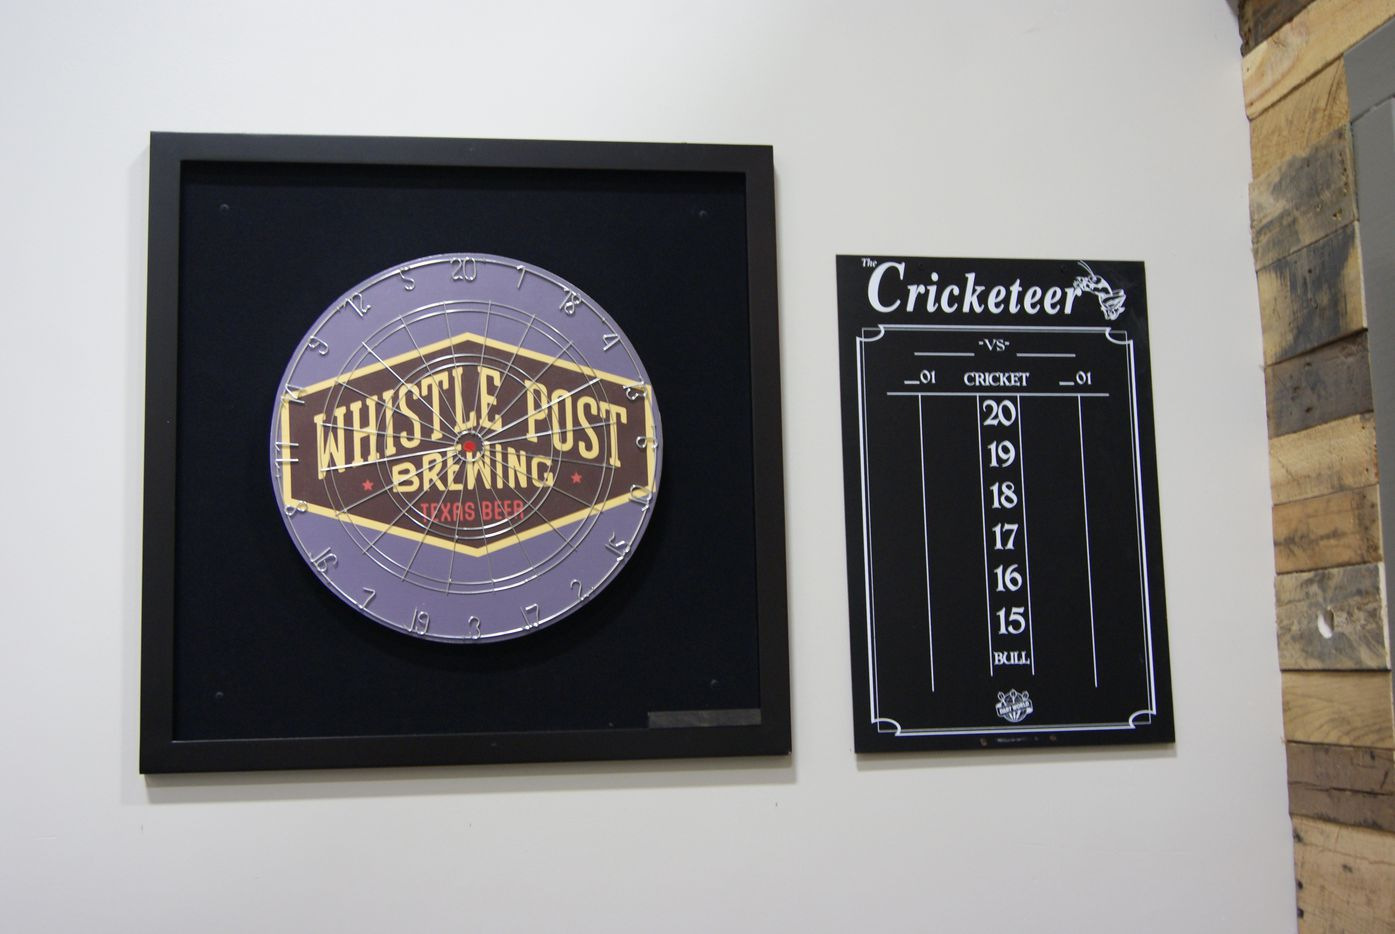 Whistle Post Brewing plans to start a fall dart league.